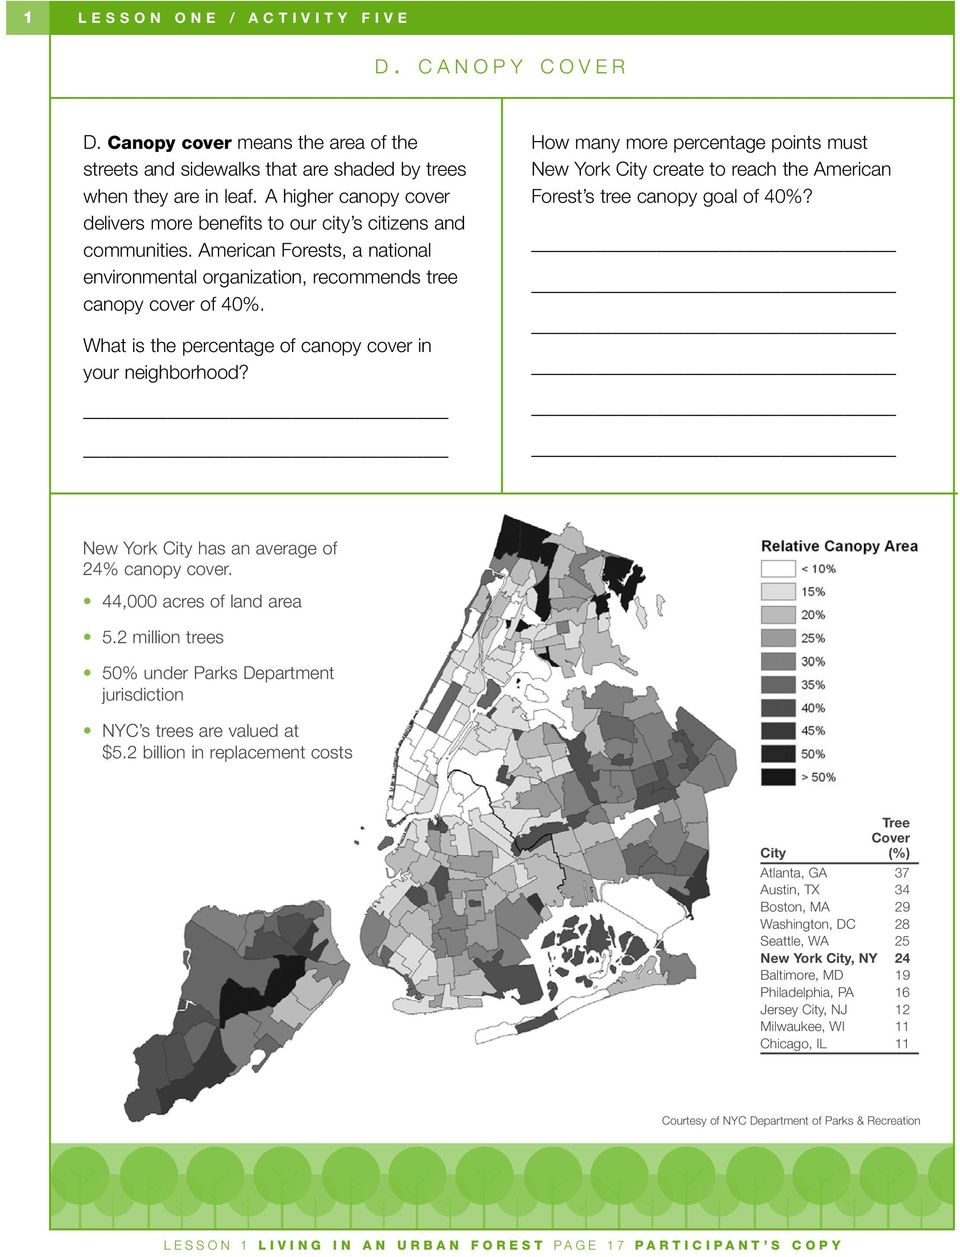 What is the percentage of canopy cover in your neighborhood? How many more percentage points must New York City create to reach the American Forest s tree canopy goal of 40%?